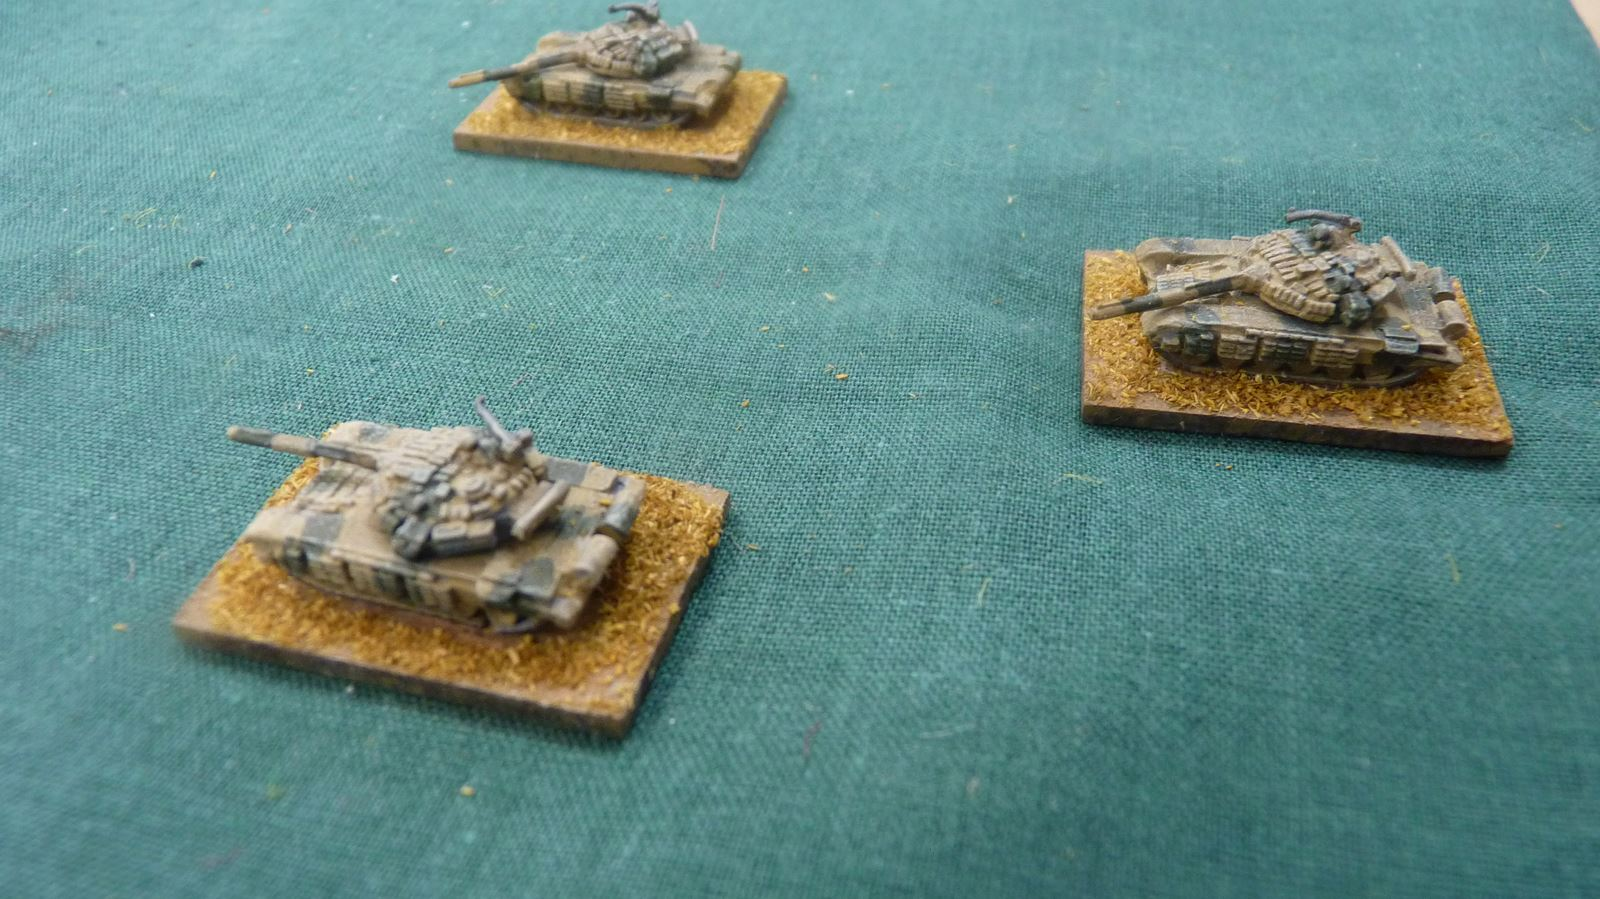 Indian tanks enter the table and fire unsuccessfully at the Chinese